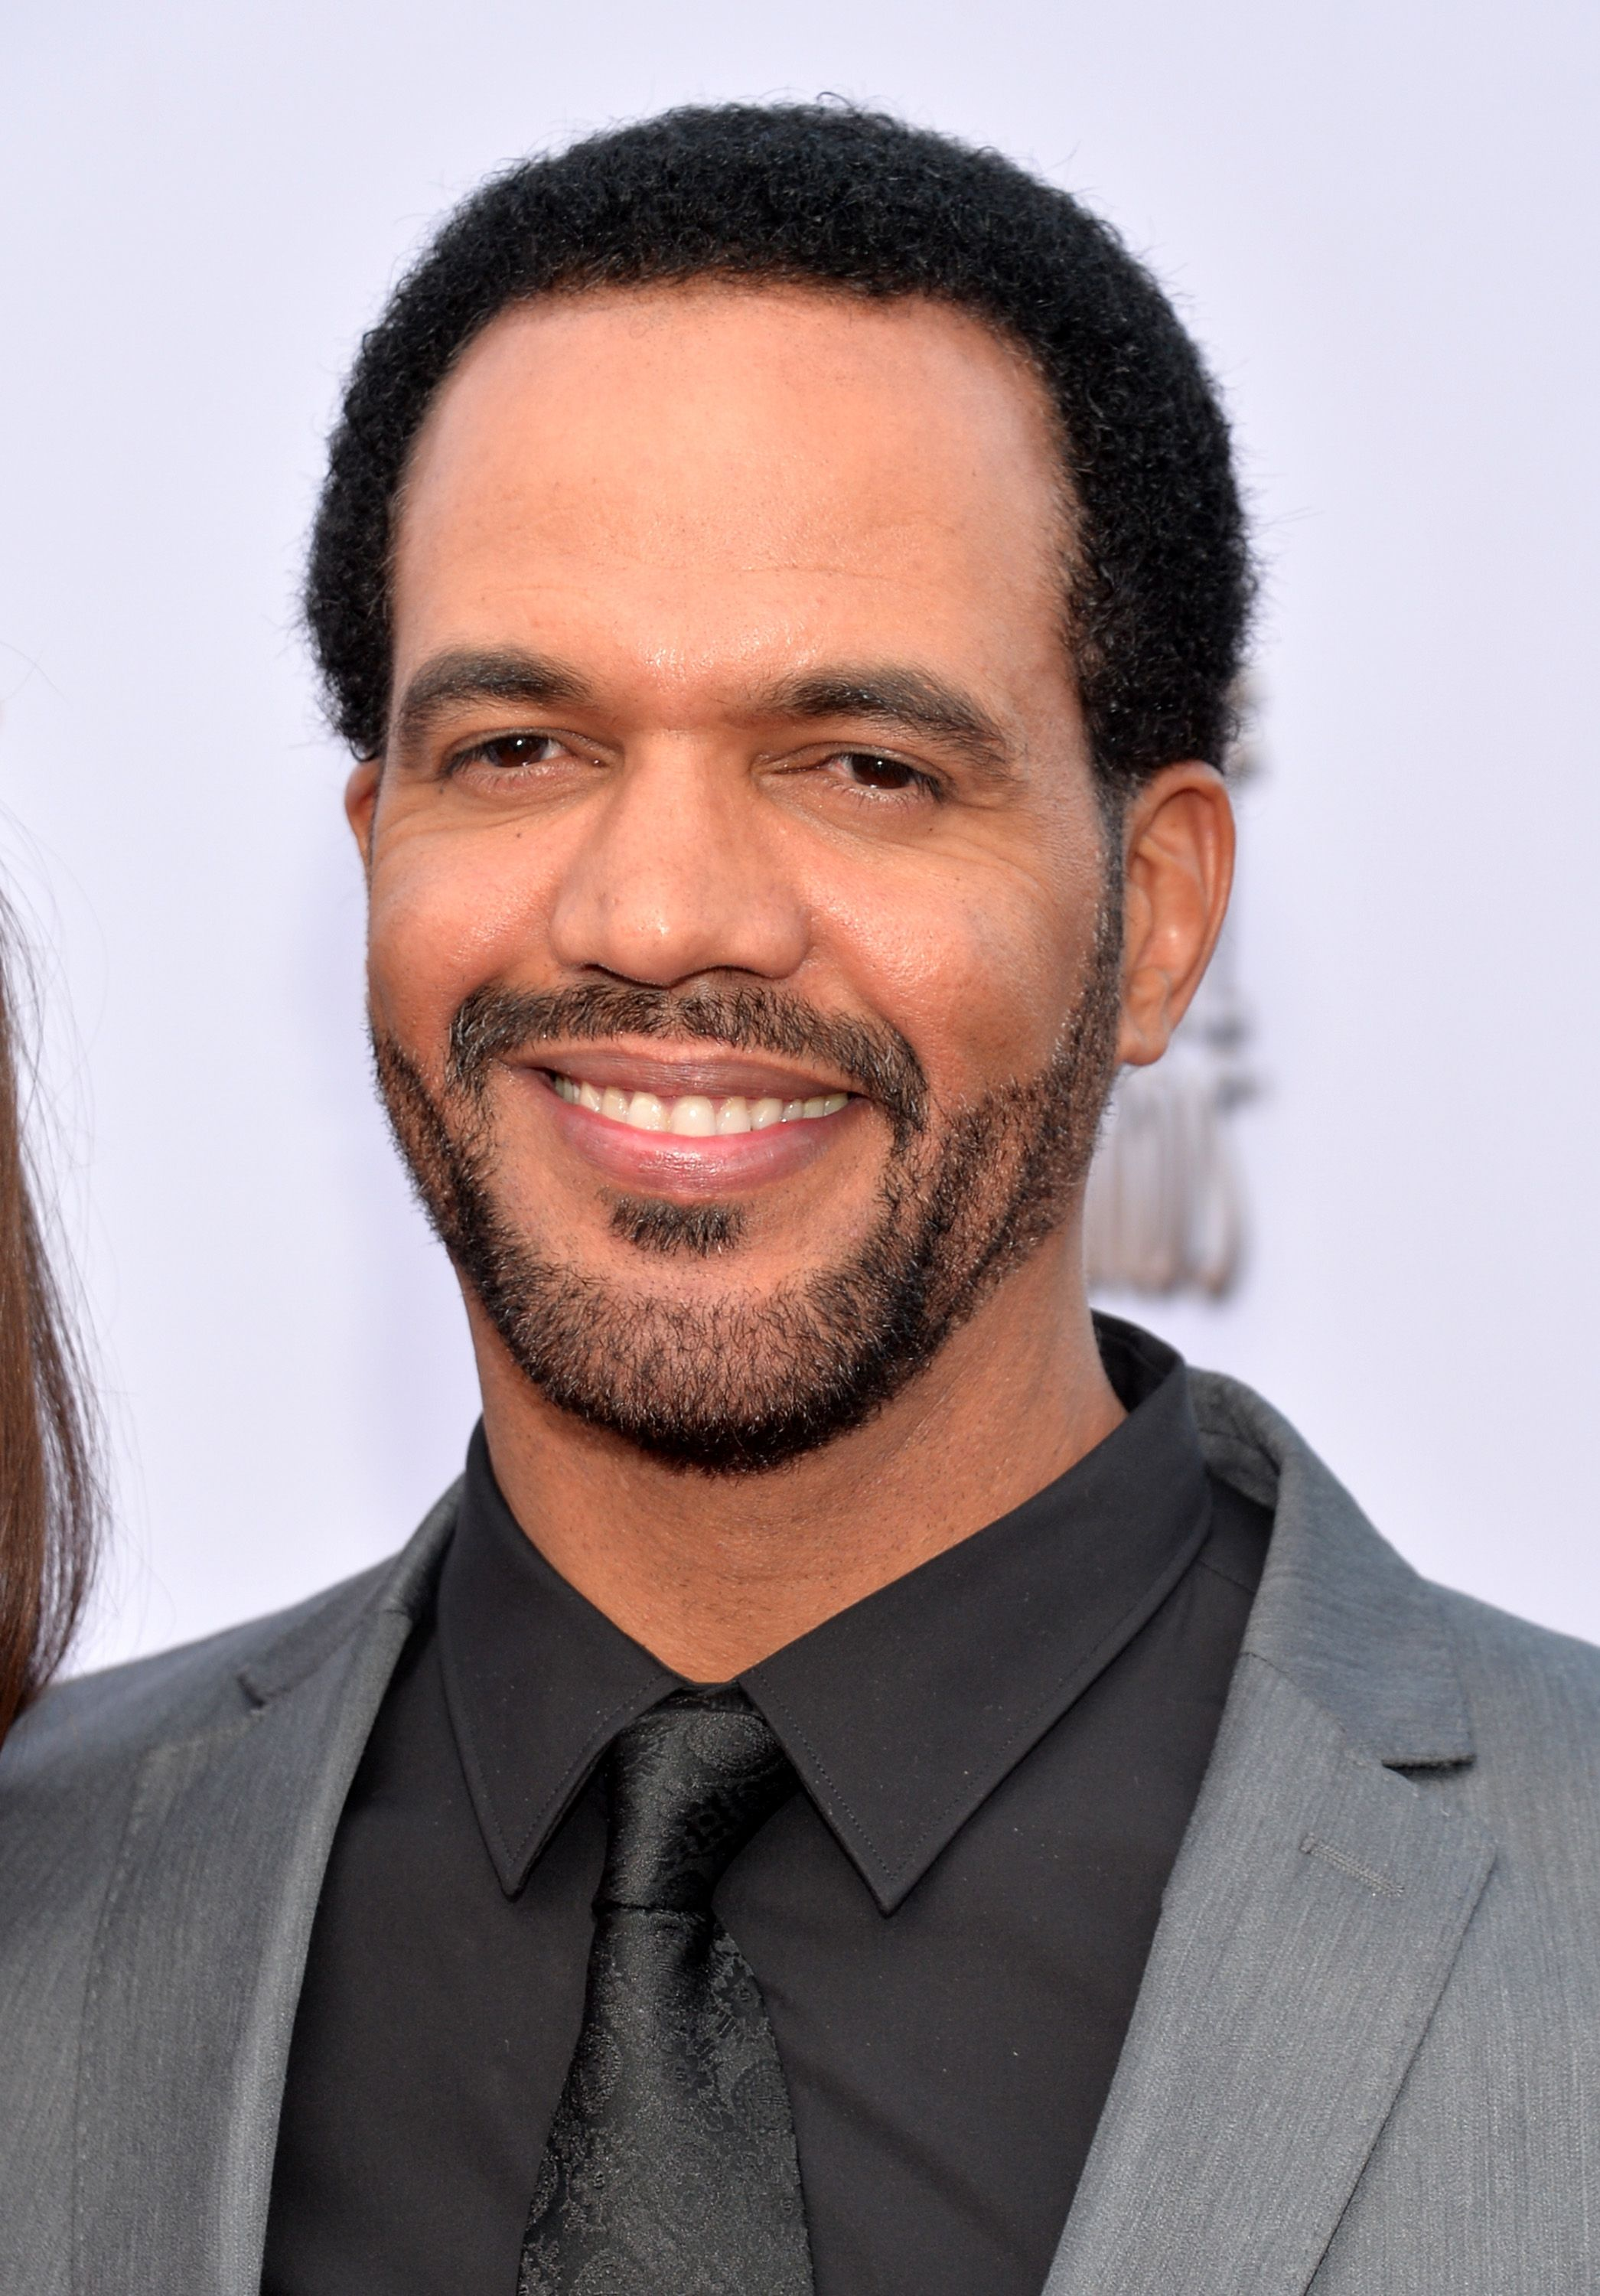 Kristoff St John has returned to the role of The Young and the Restless Neil Winters and his costars couldnt be more thrilled to have him back